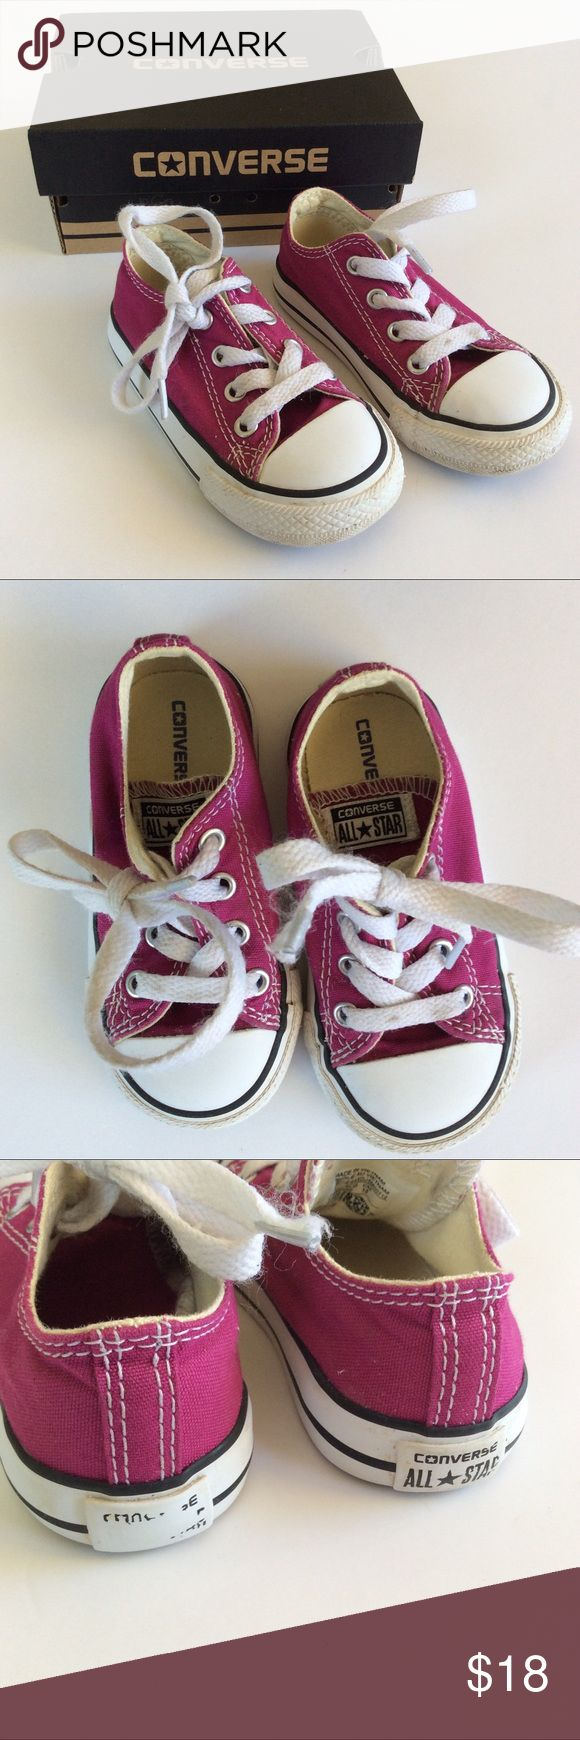 [Converse] Chuck Taylor All Star Low Top Sneaker Converse infant (toddler) size 6. Color is pink sapphire, but in my opinion they look more purple. Gently used, in really good condition! Only flaws are one of the clear plastic shoelace ends came off, and some of the writing on the back heel came off when I was cleaning them. See photos 3 & 4. Insides and uppers are very clean. Comes with original box. Converse Shoes Baby & Walker